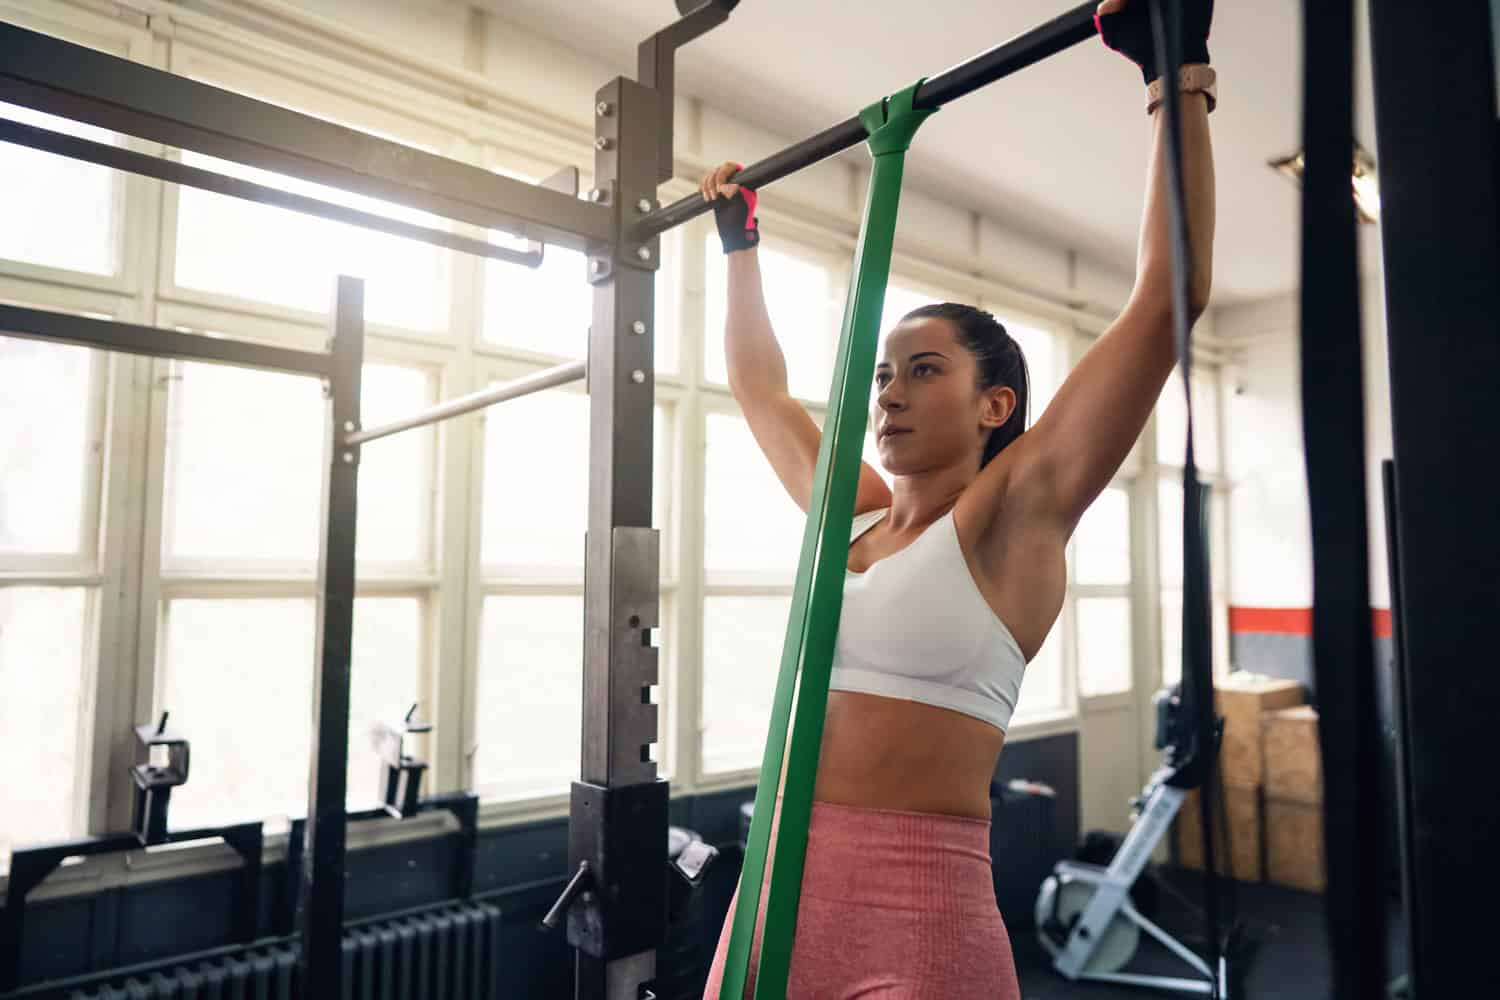 A woman doing a pull up workout inside the gym